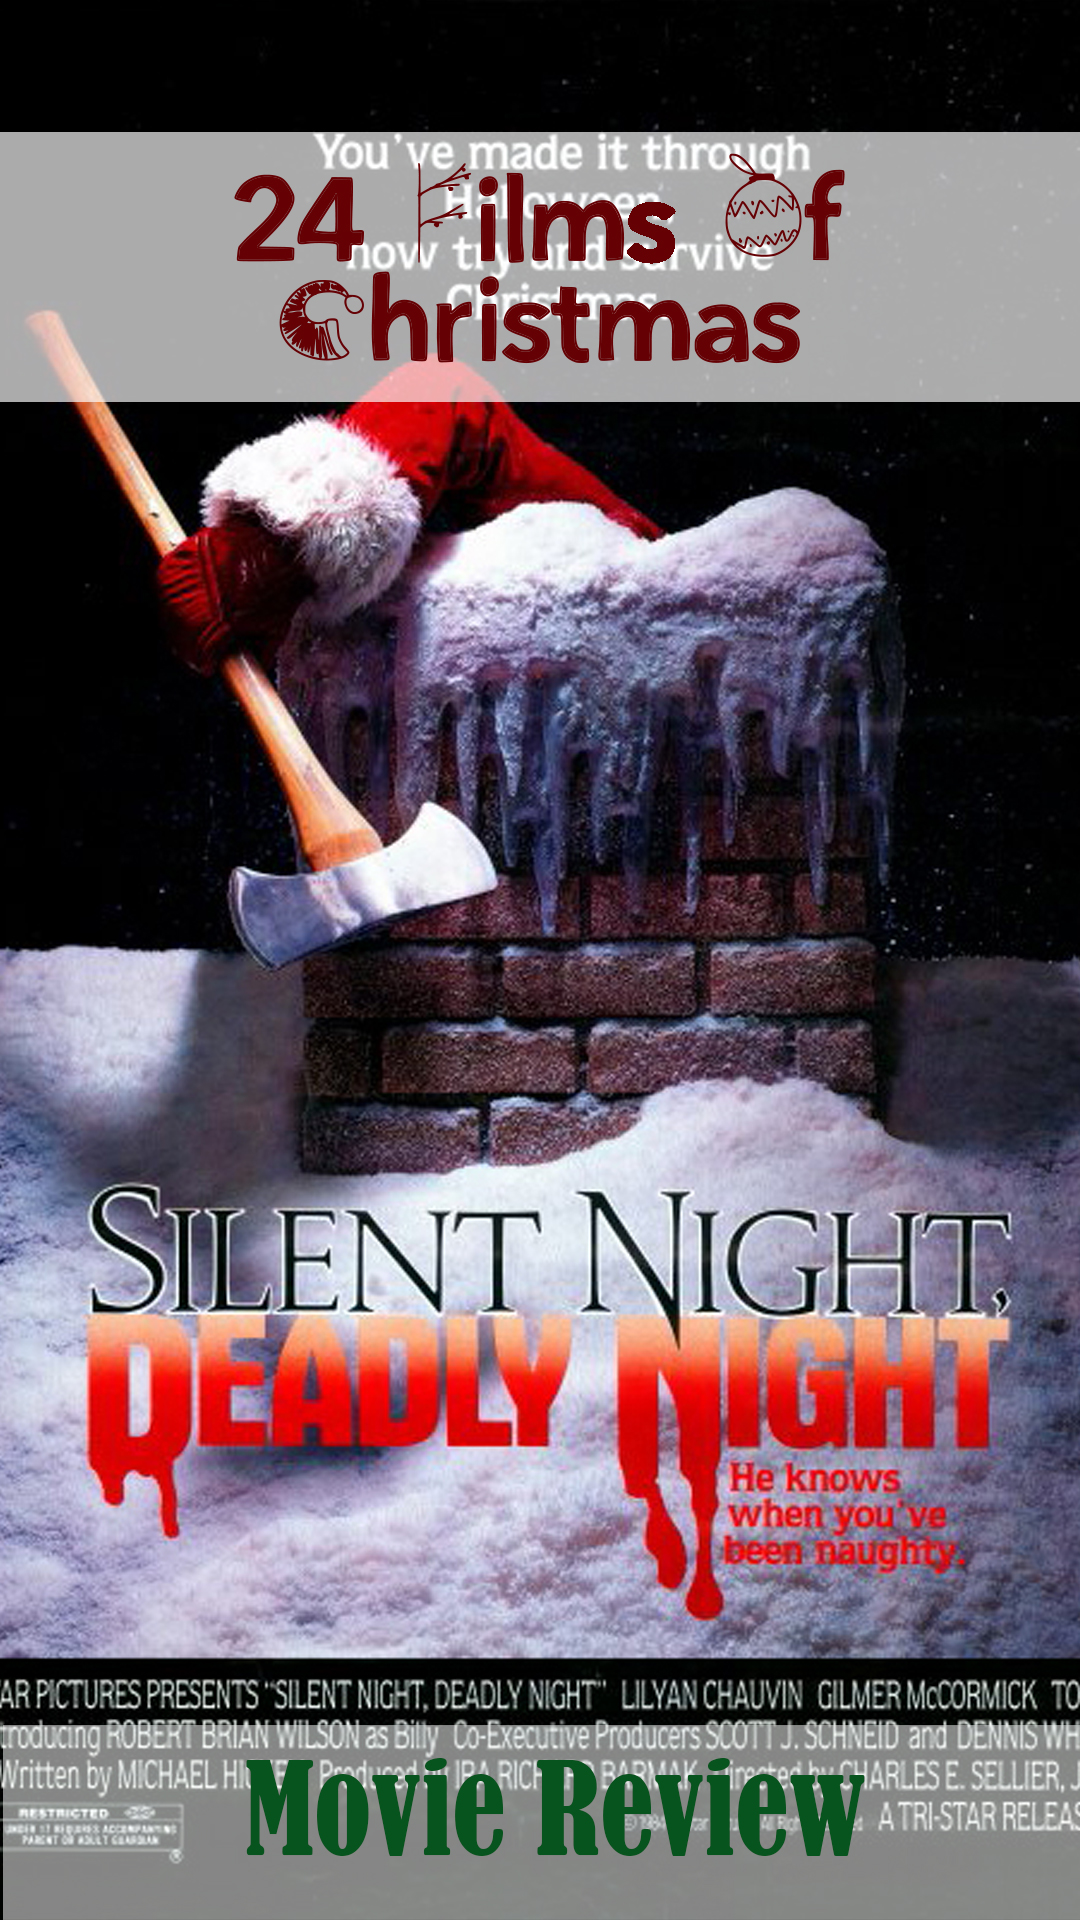 Silent Night, Deadly Night (1984) Film Review